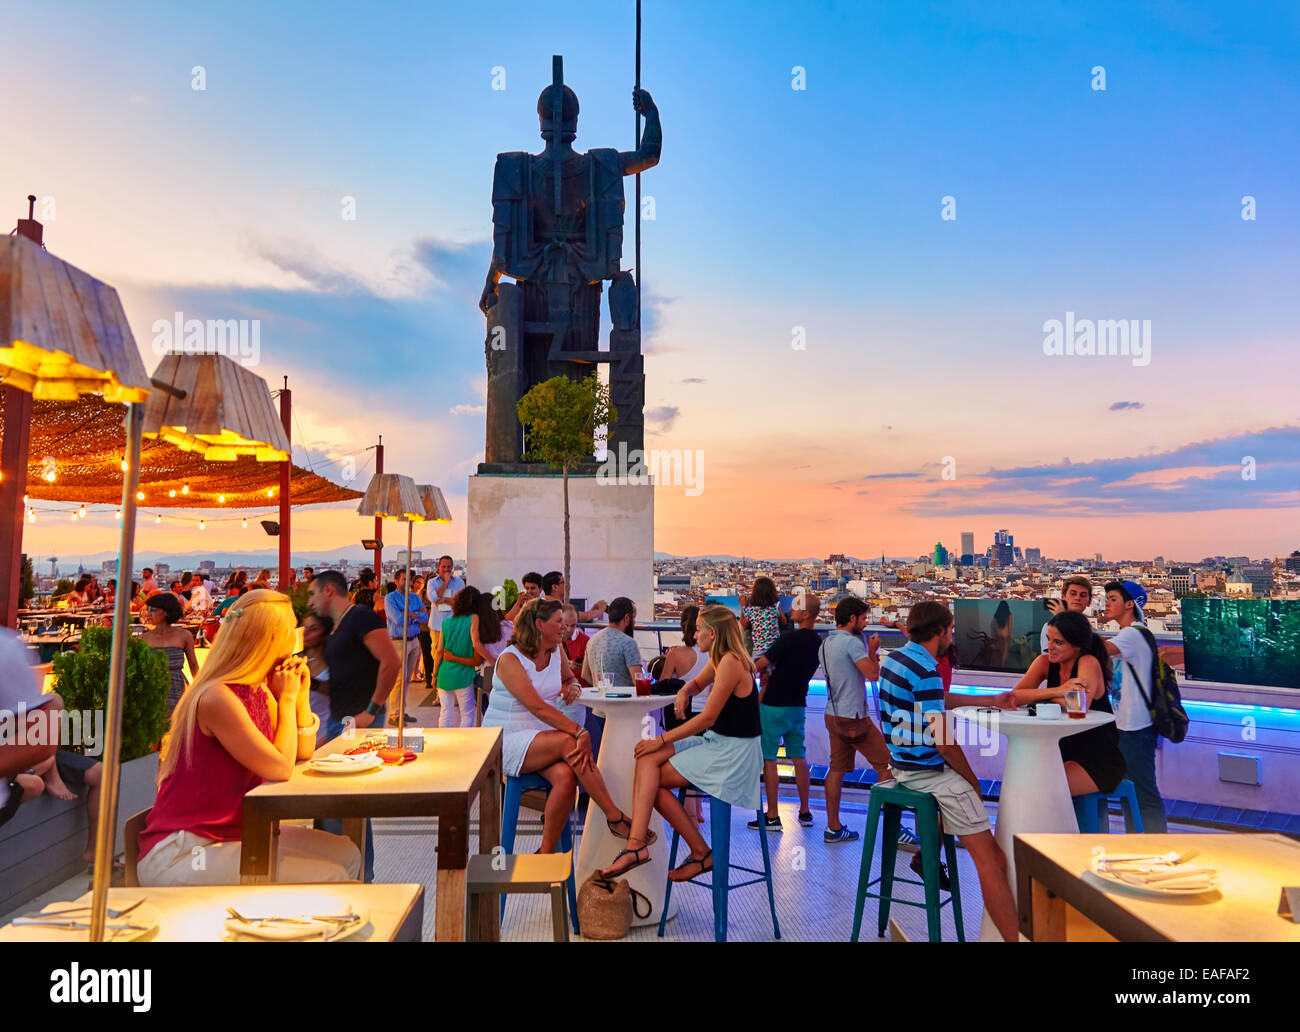 The Circulo de Bellas artes cultural center rooftop terrace. Madrid. Spain - Stock Image